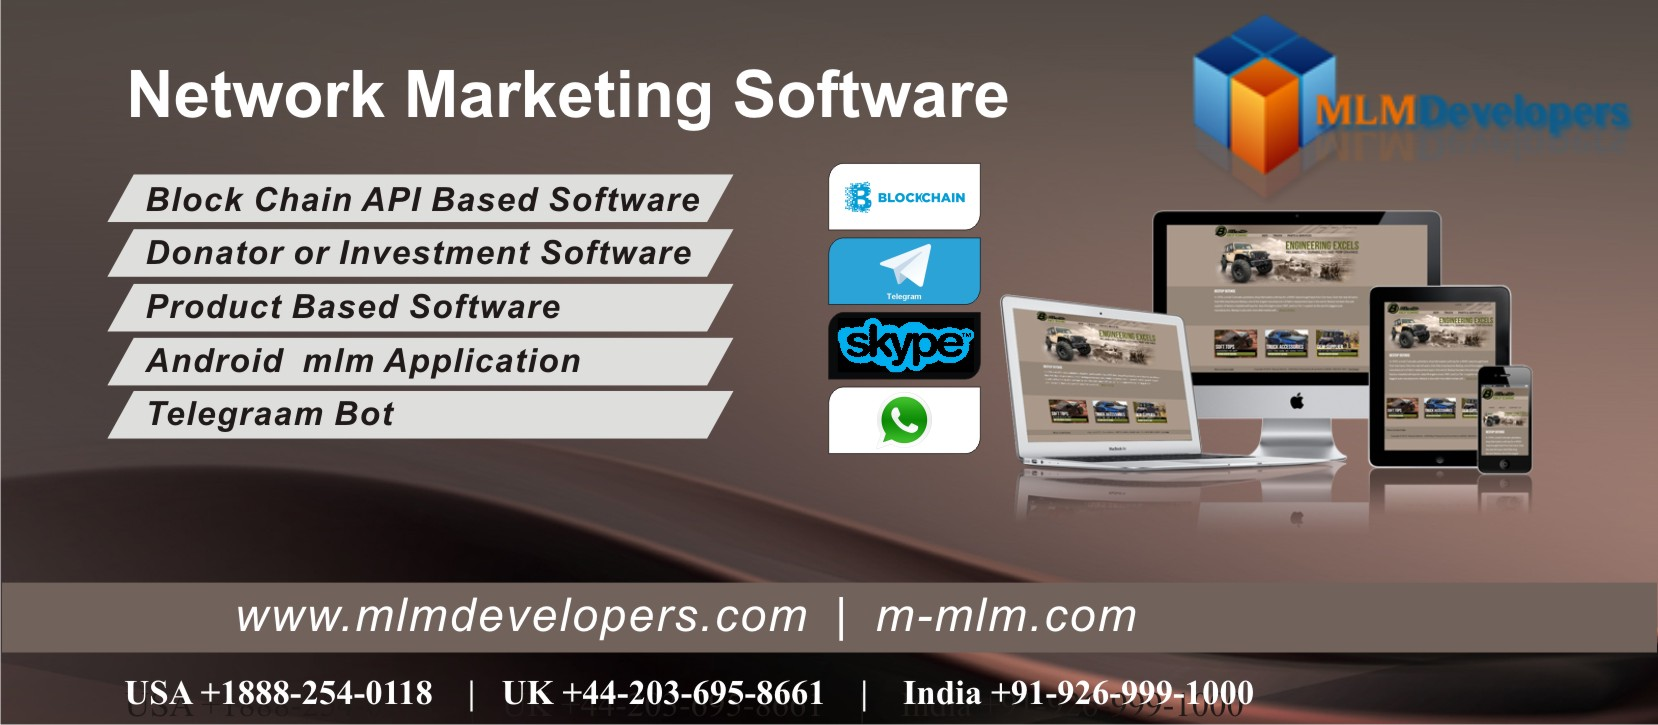 Best MLM Software For Network Marketing Business